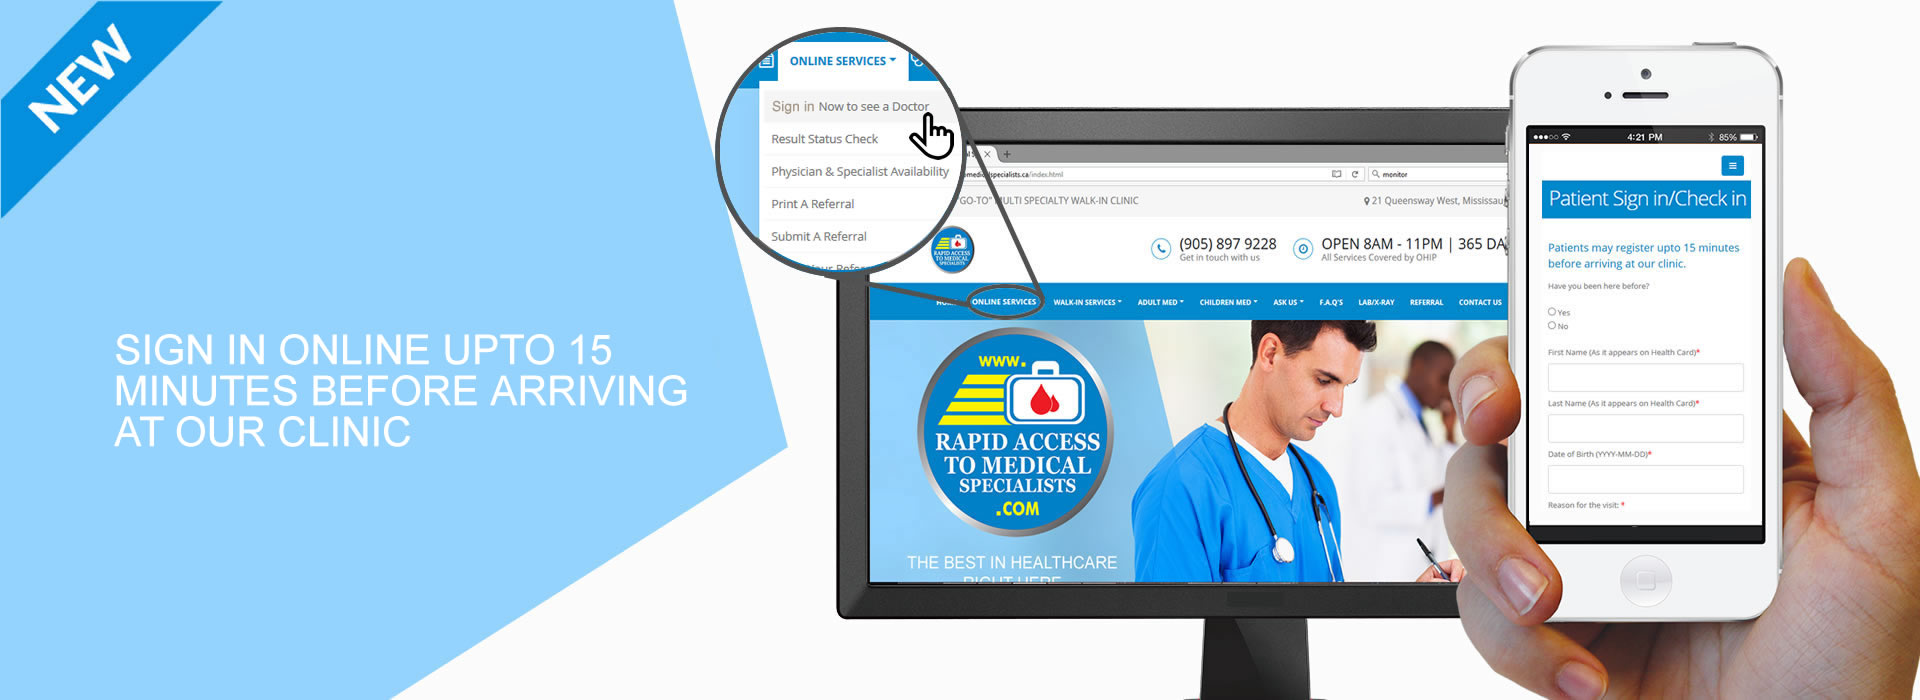 Pre-registration online upto 15 minutes before coming to our clinic